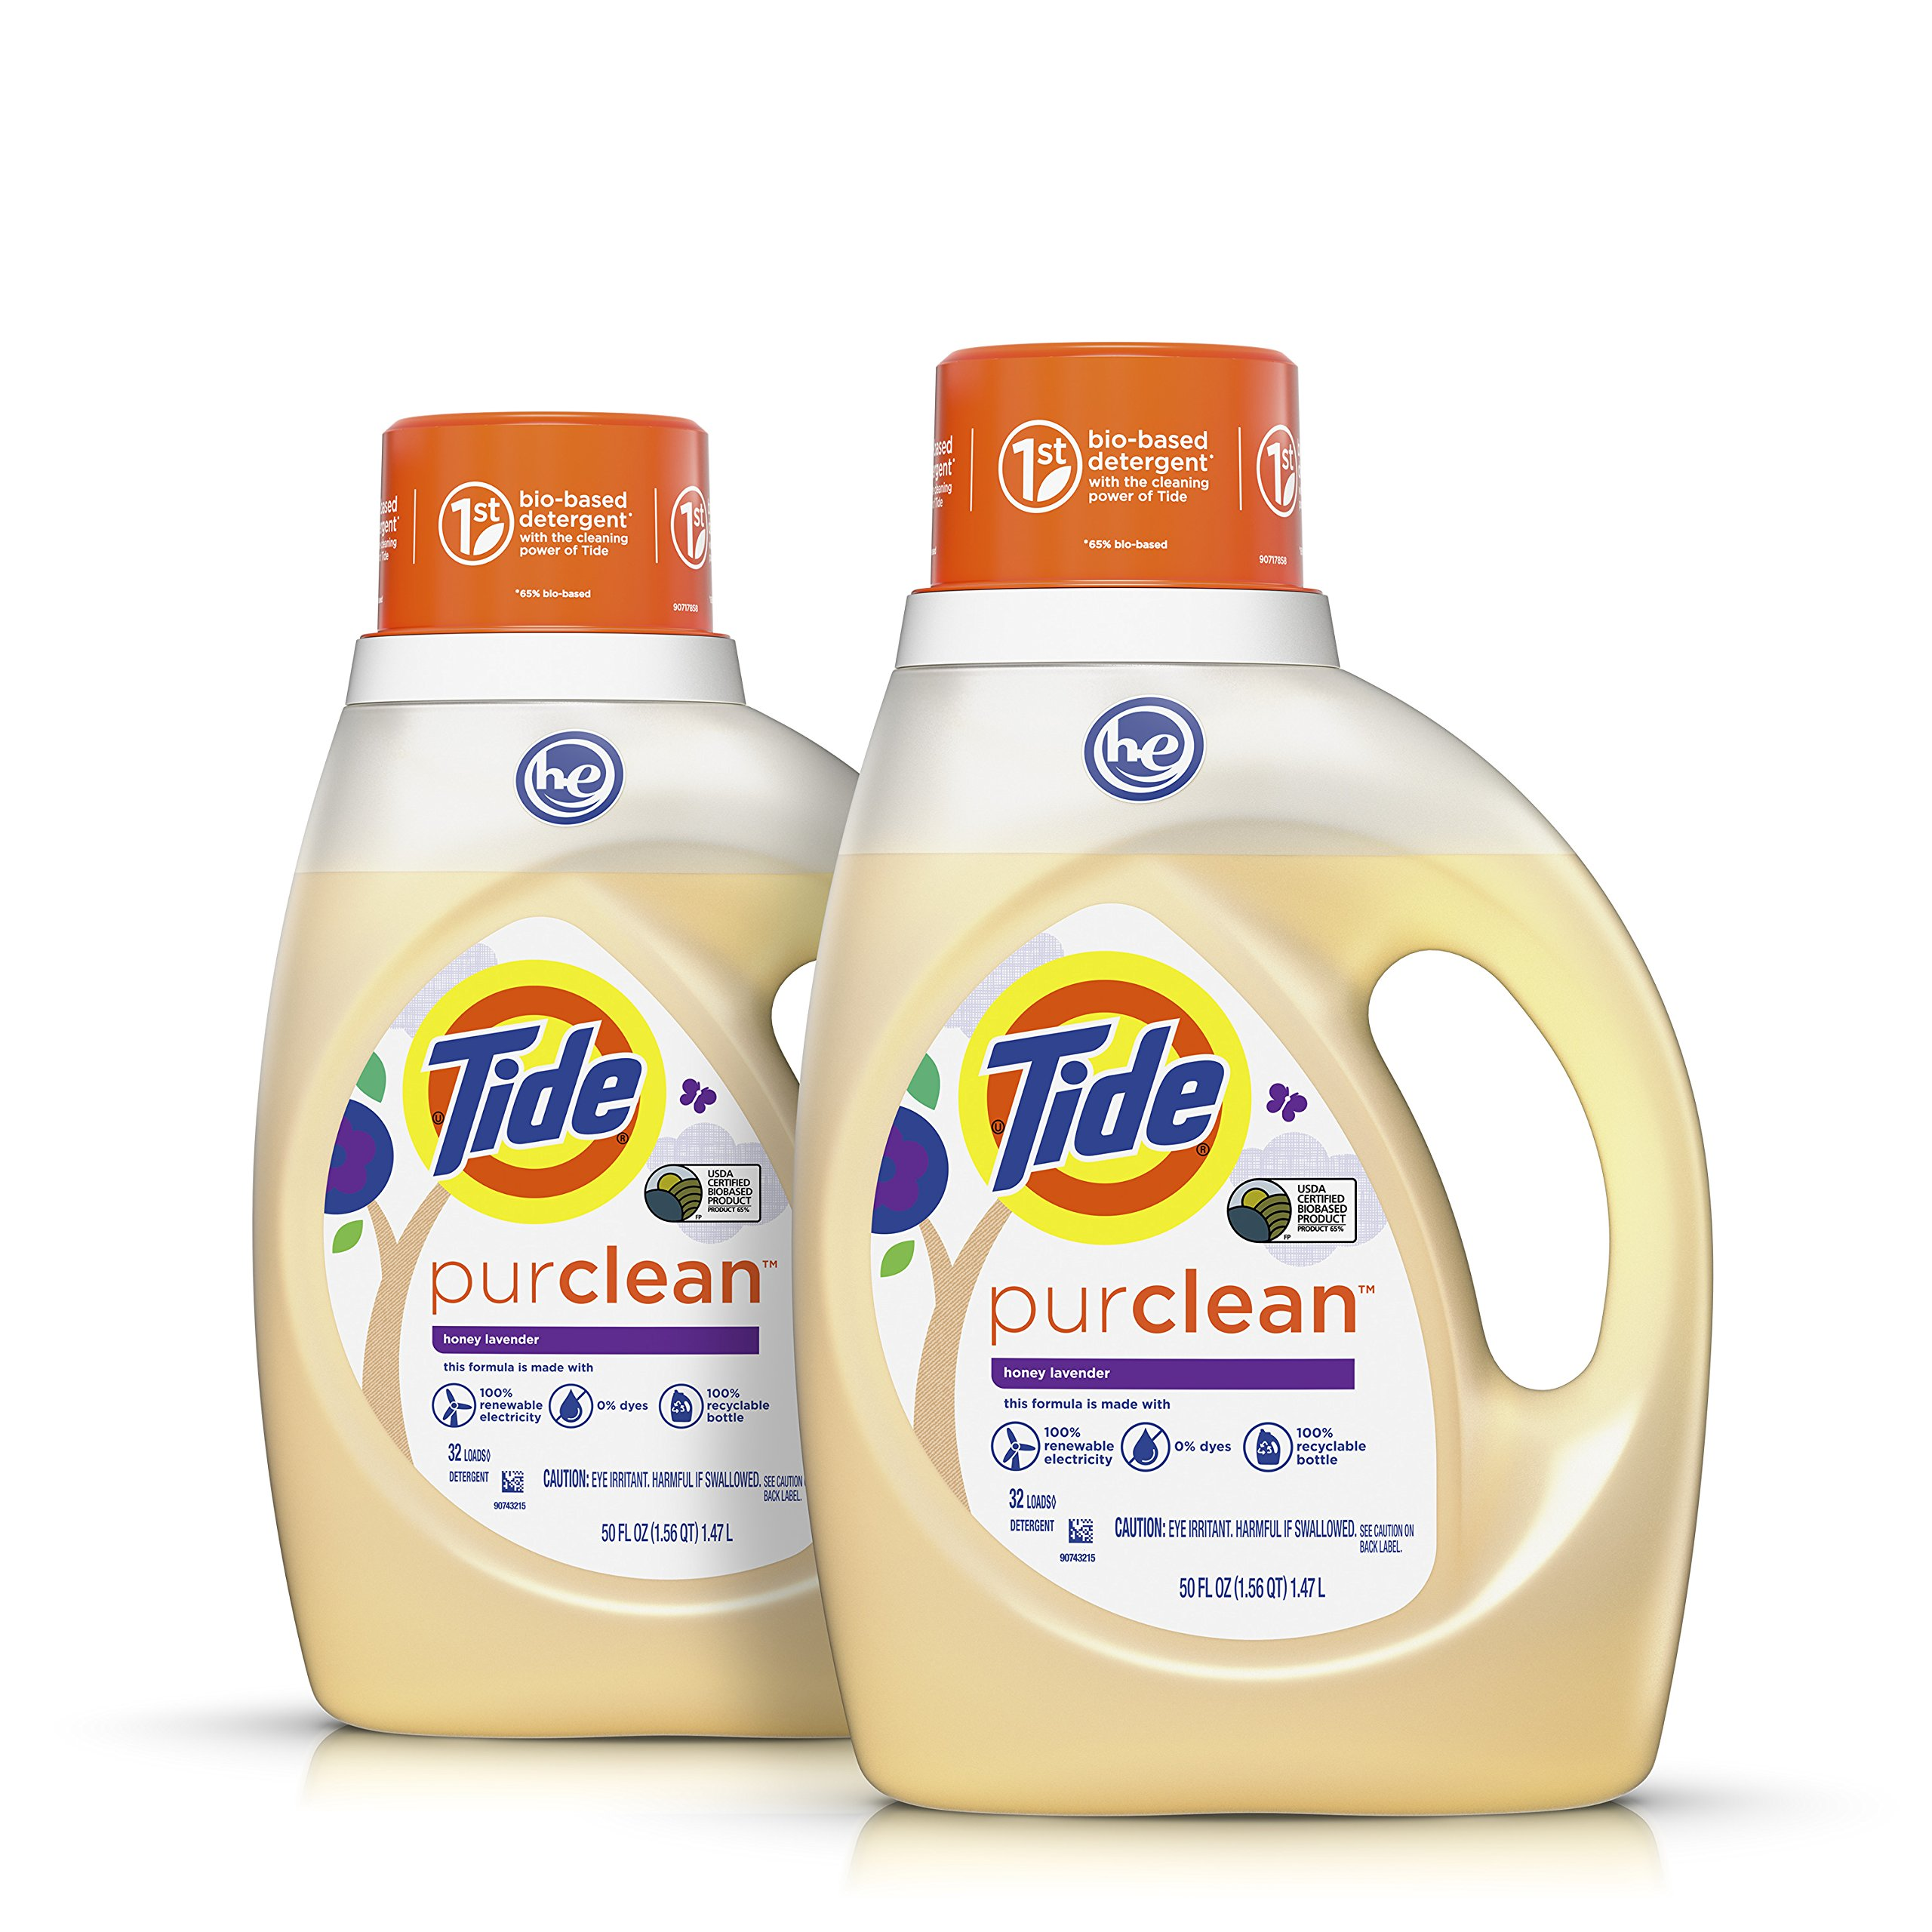 Tide Purclean Plant-Based Laundry Detergent, Honey Lavender Scent, 2x50 oz, 64 Loads(Packaging May Vary)